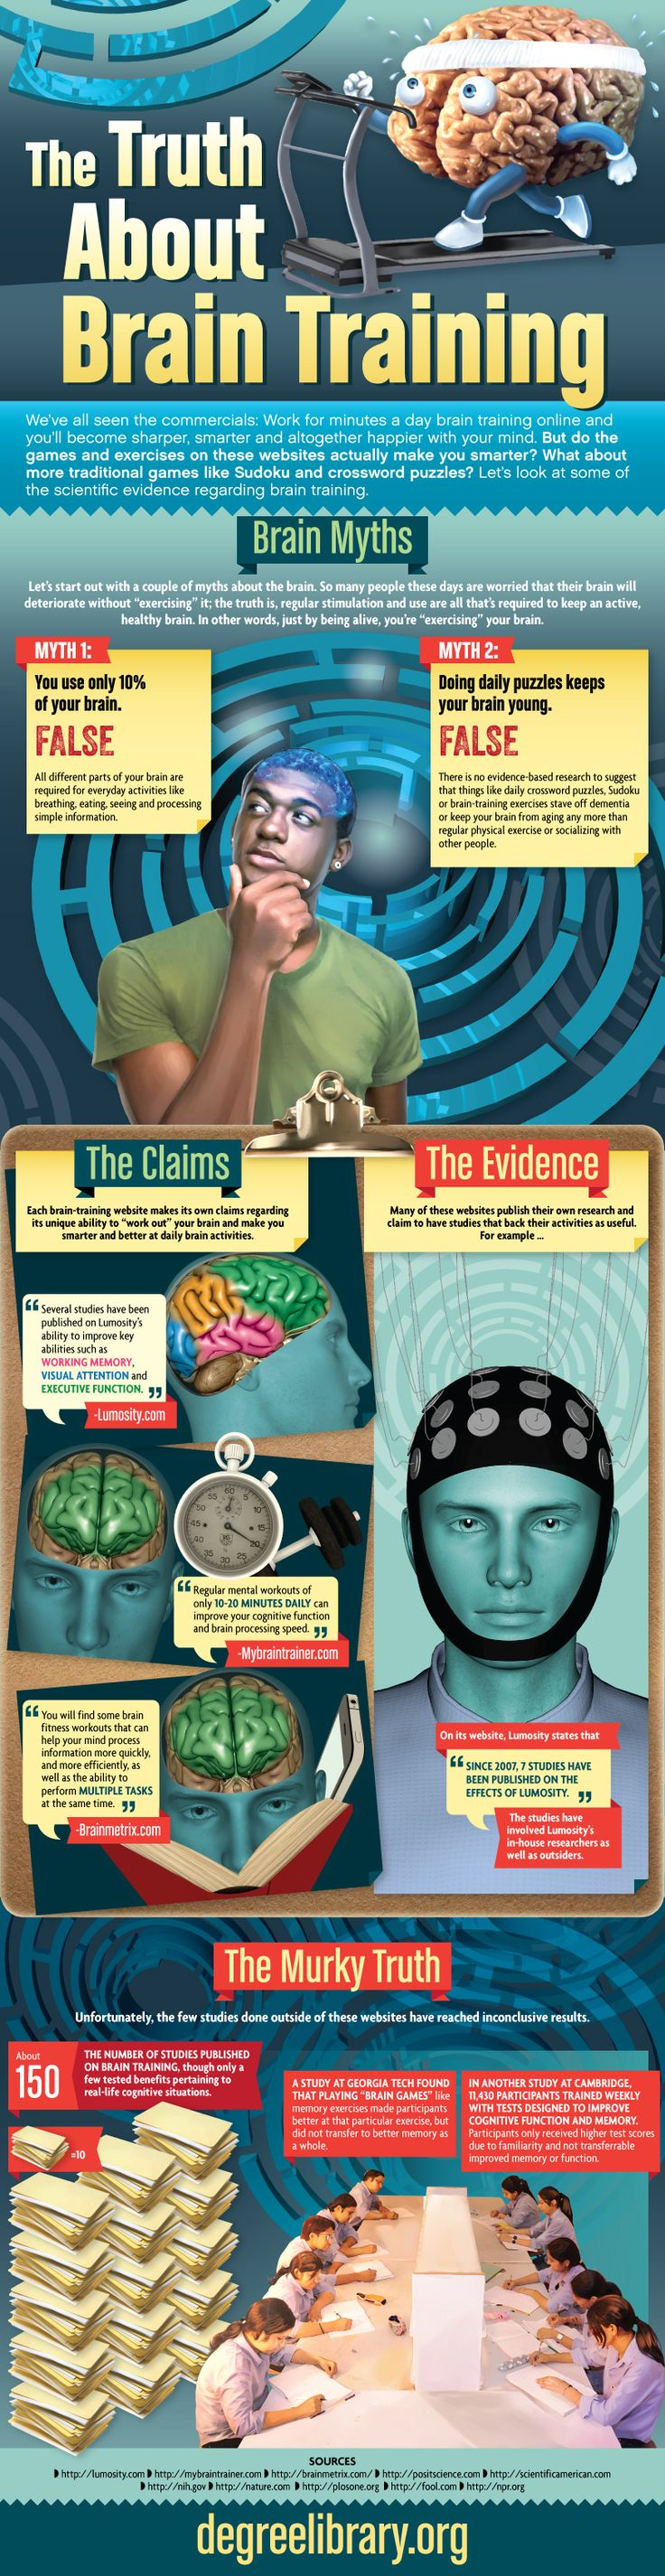 The Truth About Brain Training Infographic presents some scientific evidence regarding brain training.